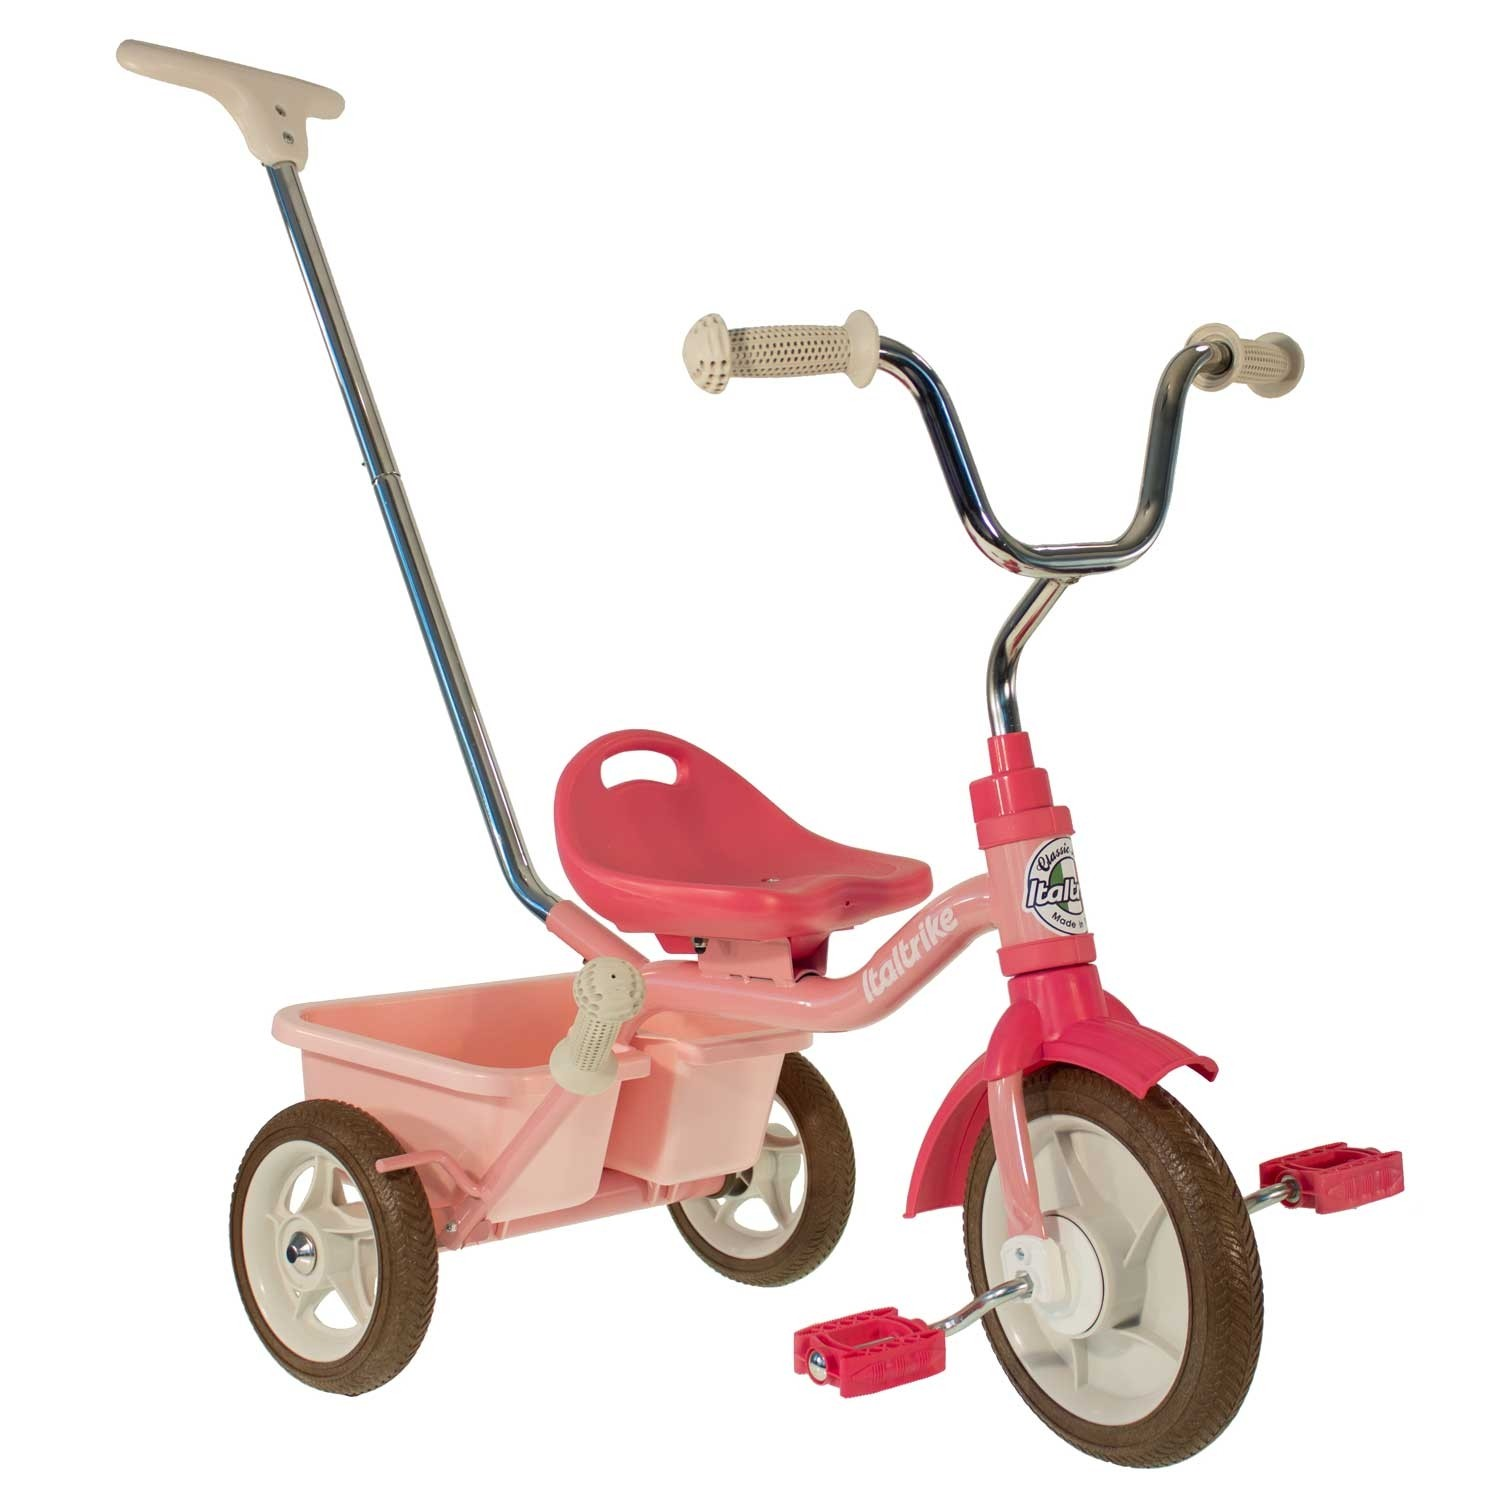 Tricycle Passenger Italtrike rose avec canne et benne